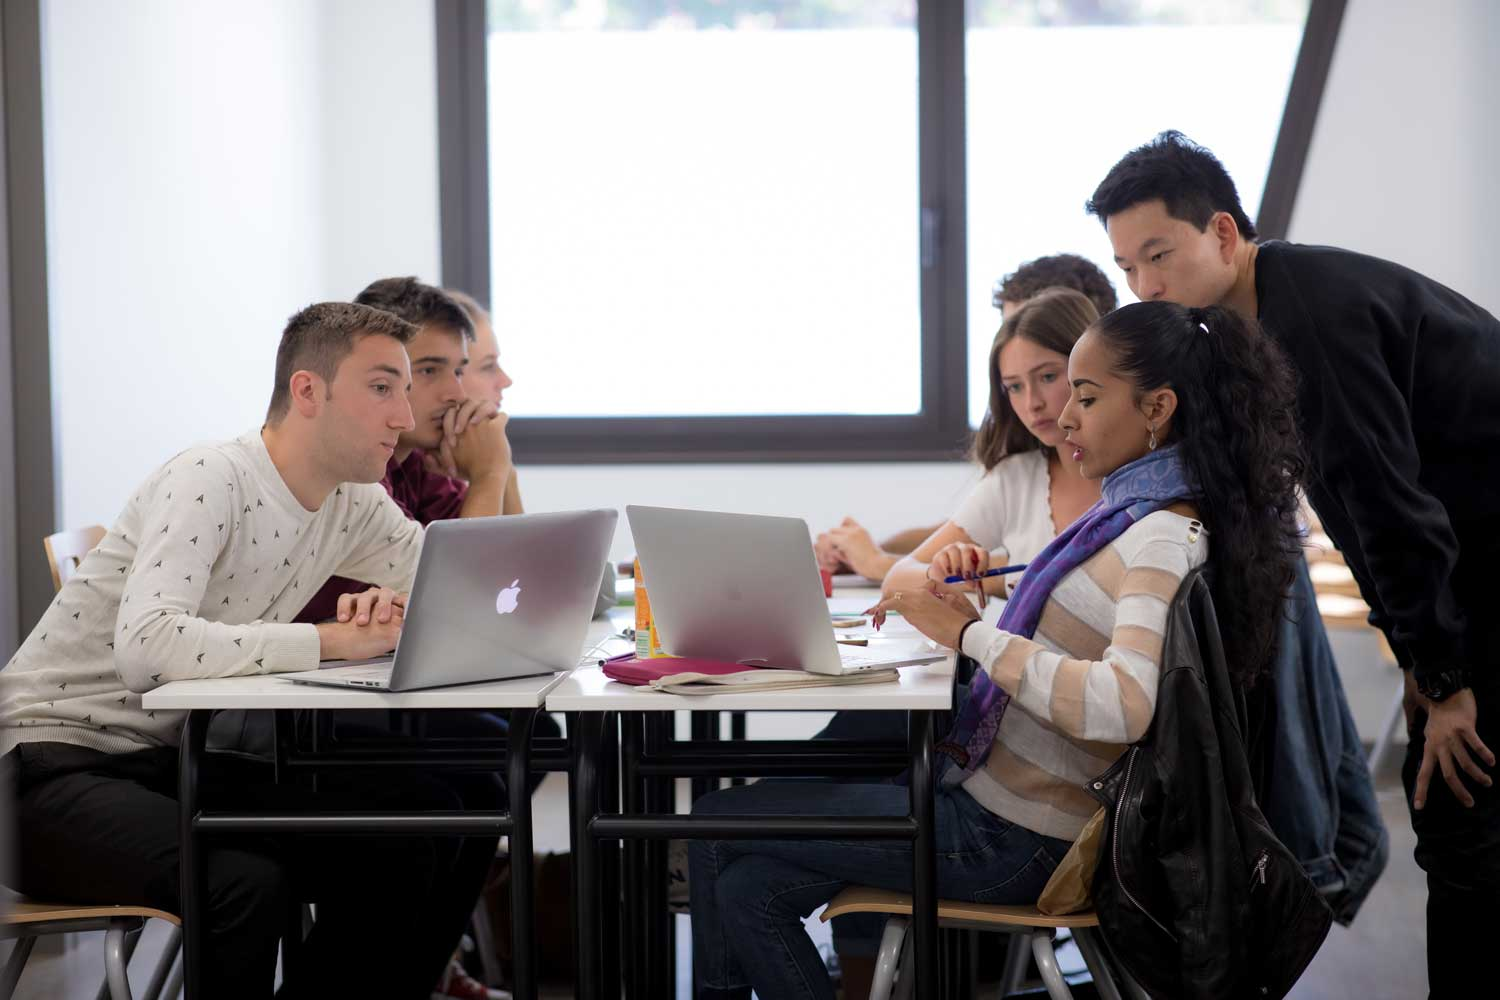 Boost your employability at BSB